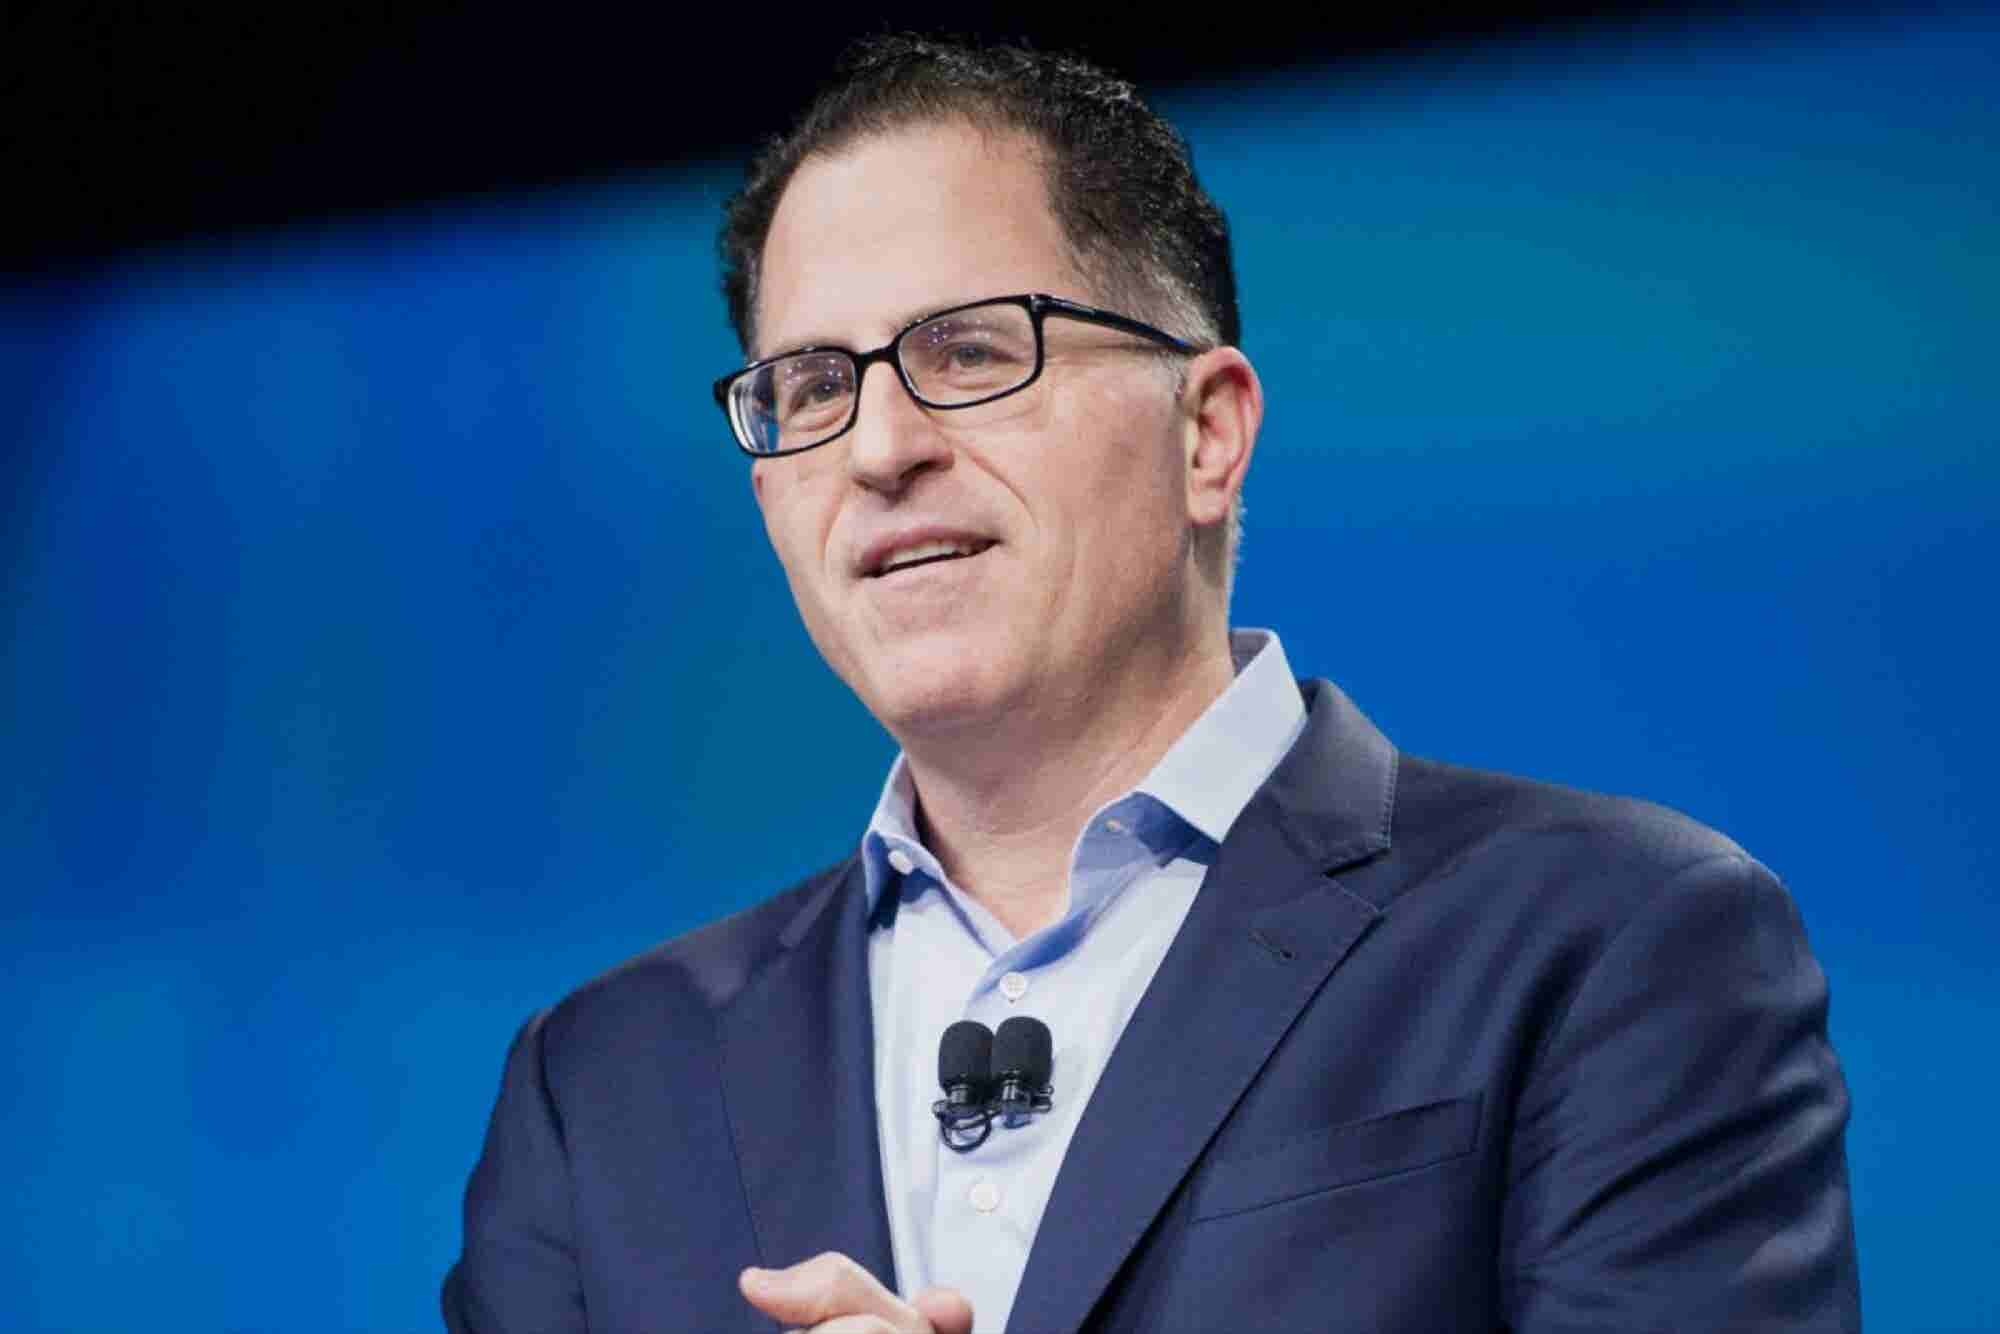 10 Quotes on Following Your Dreams, Having Passion and Showing Hard Work from Tech Guru Michael Dell